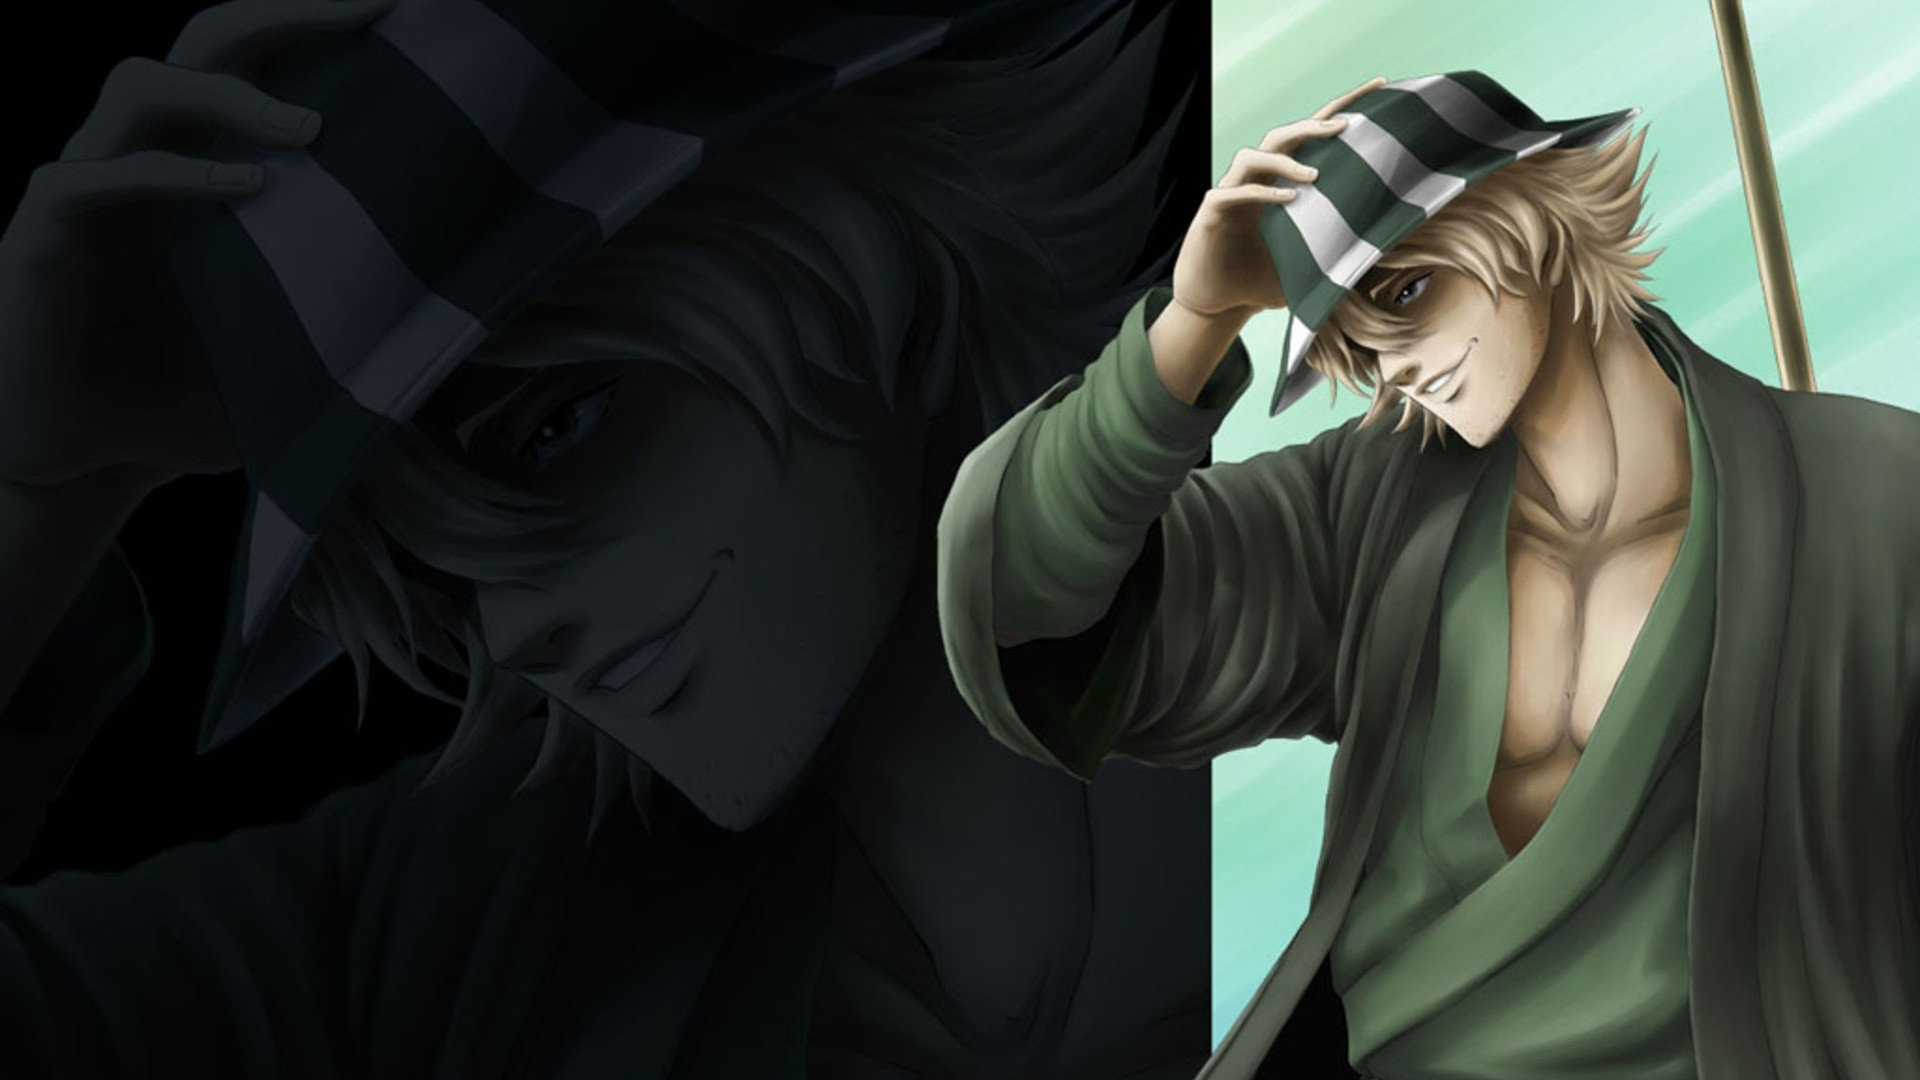 Awesome Kisuke Urahara free wallpaper ID:419118 for hd 1920x1080 computer